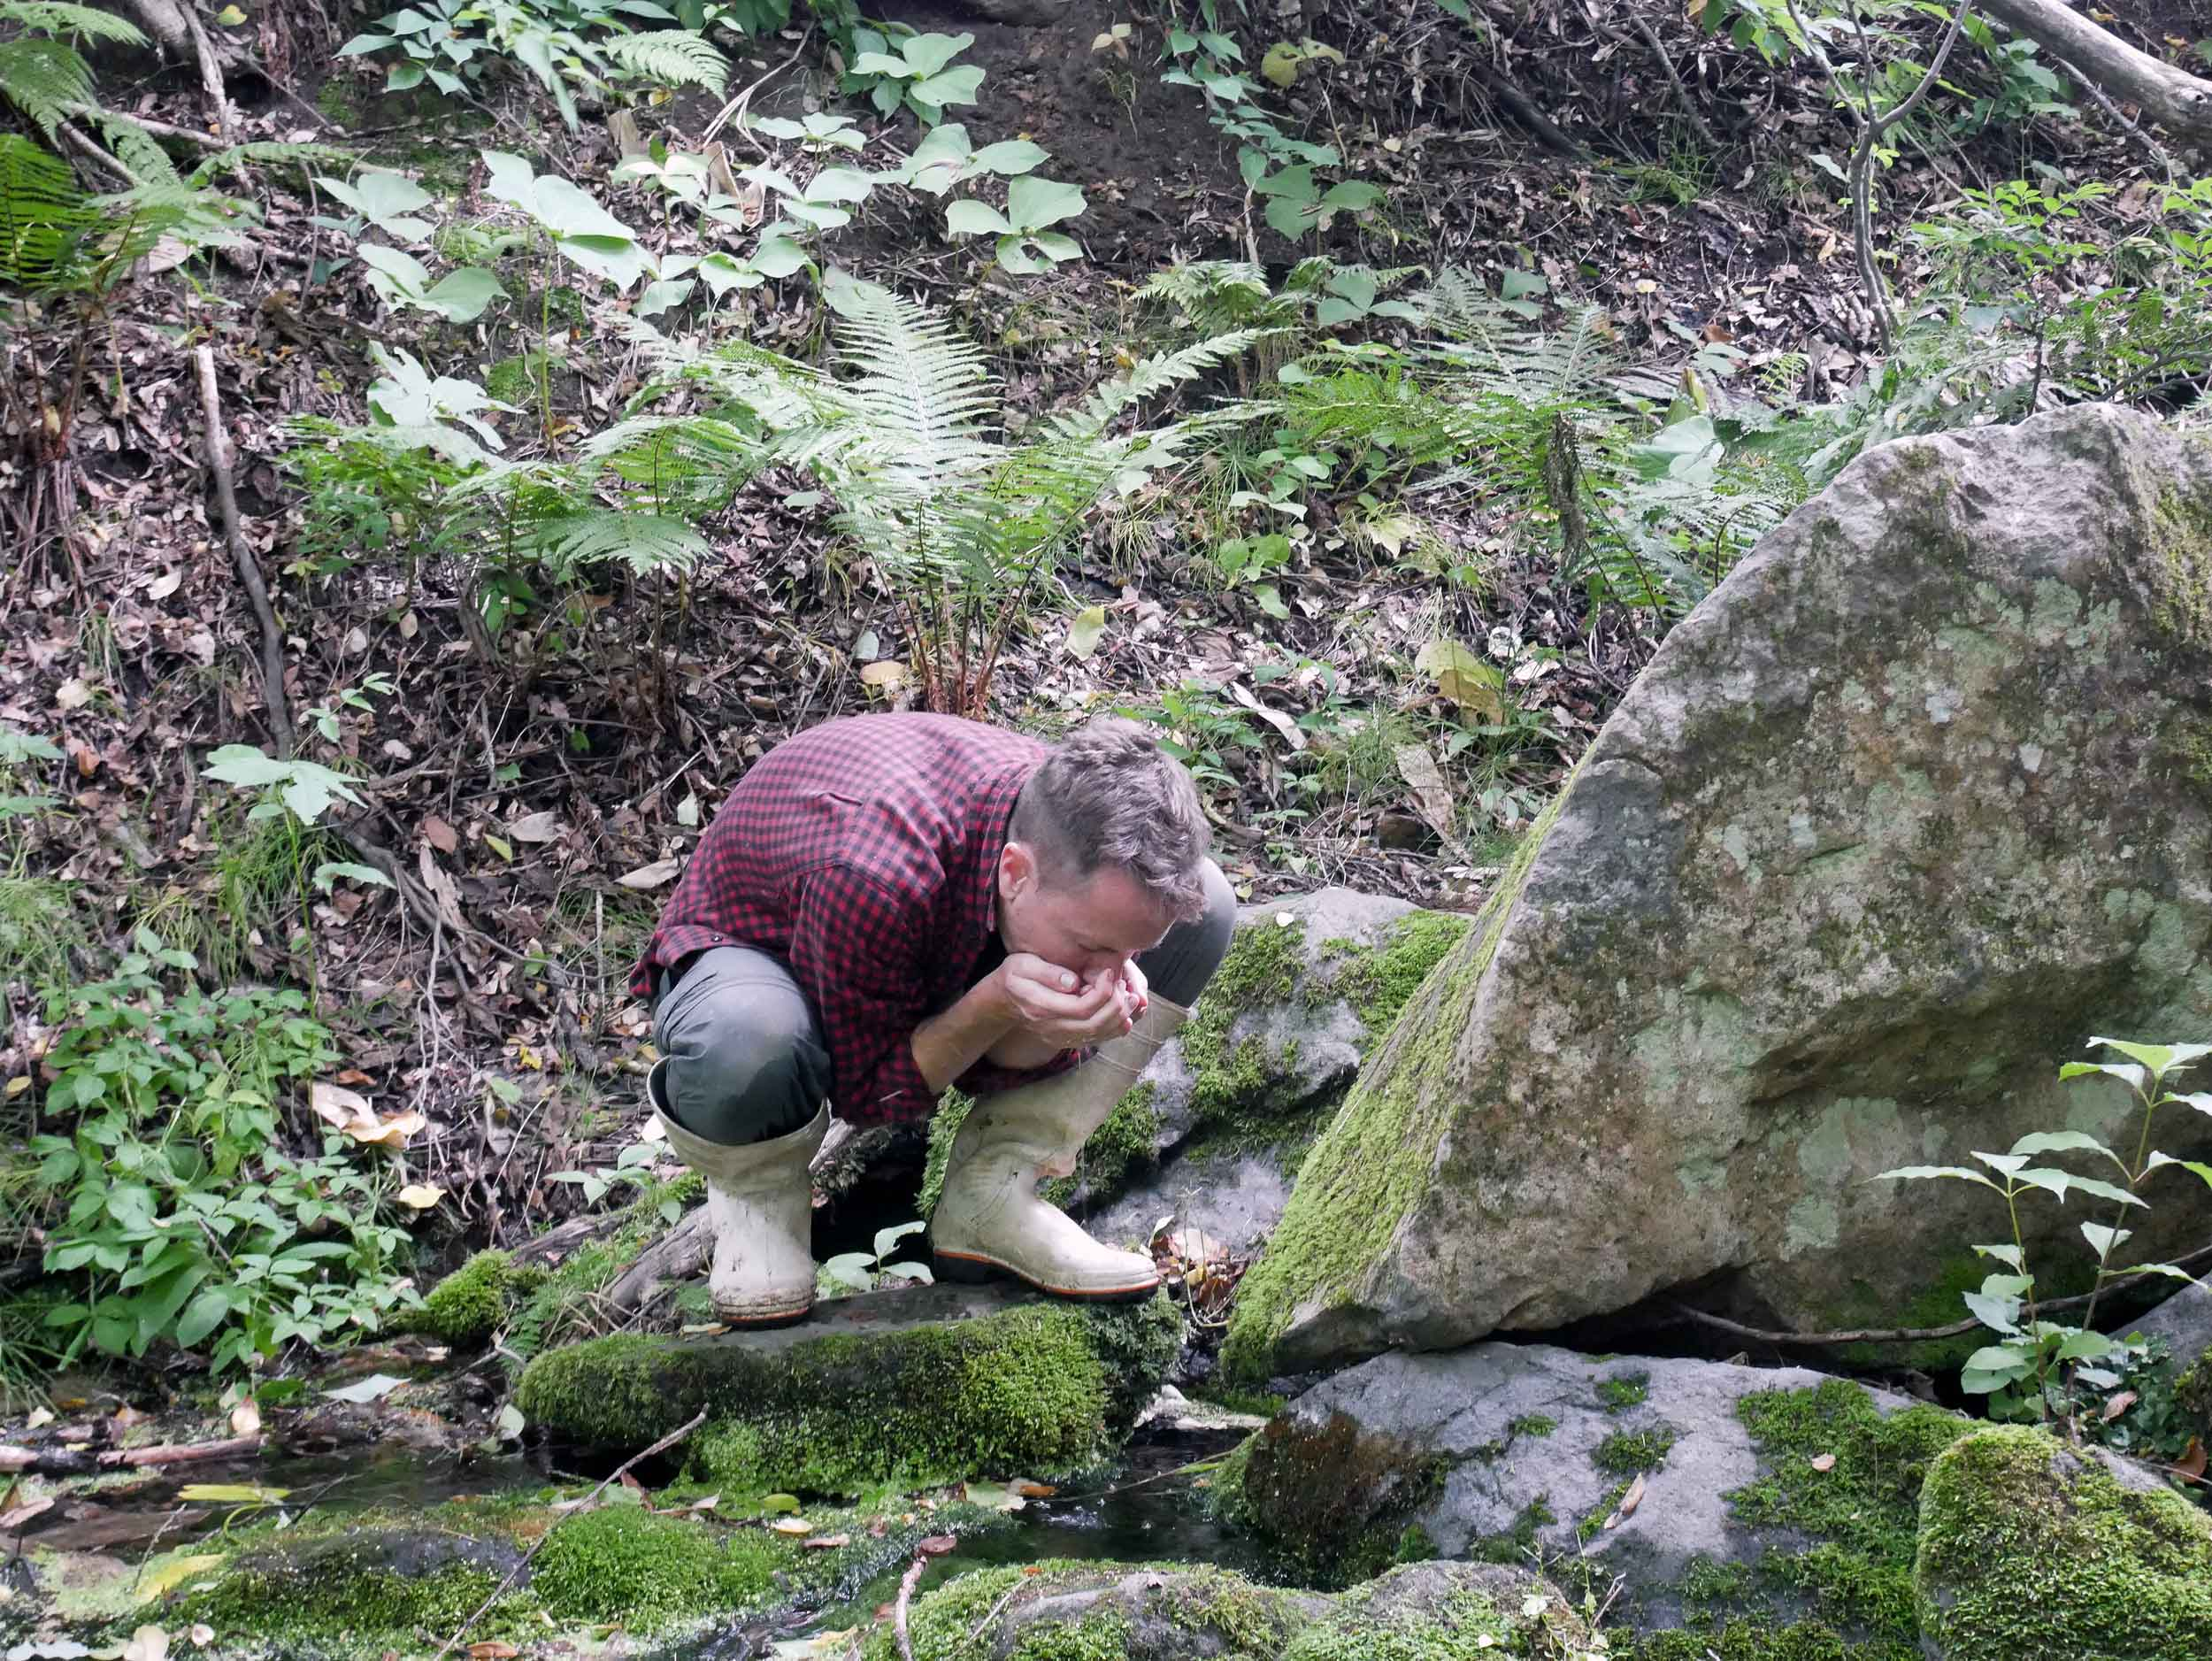 The water on the farm comes from a beautiful natural cold spring. Here, Martin has a taste straight from the source.